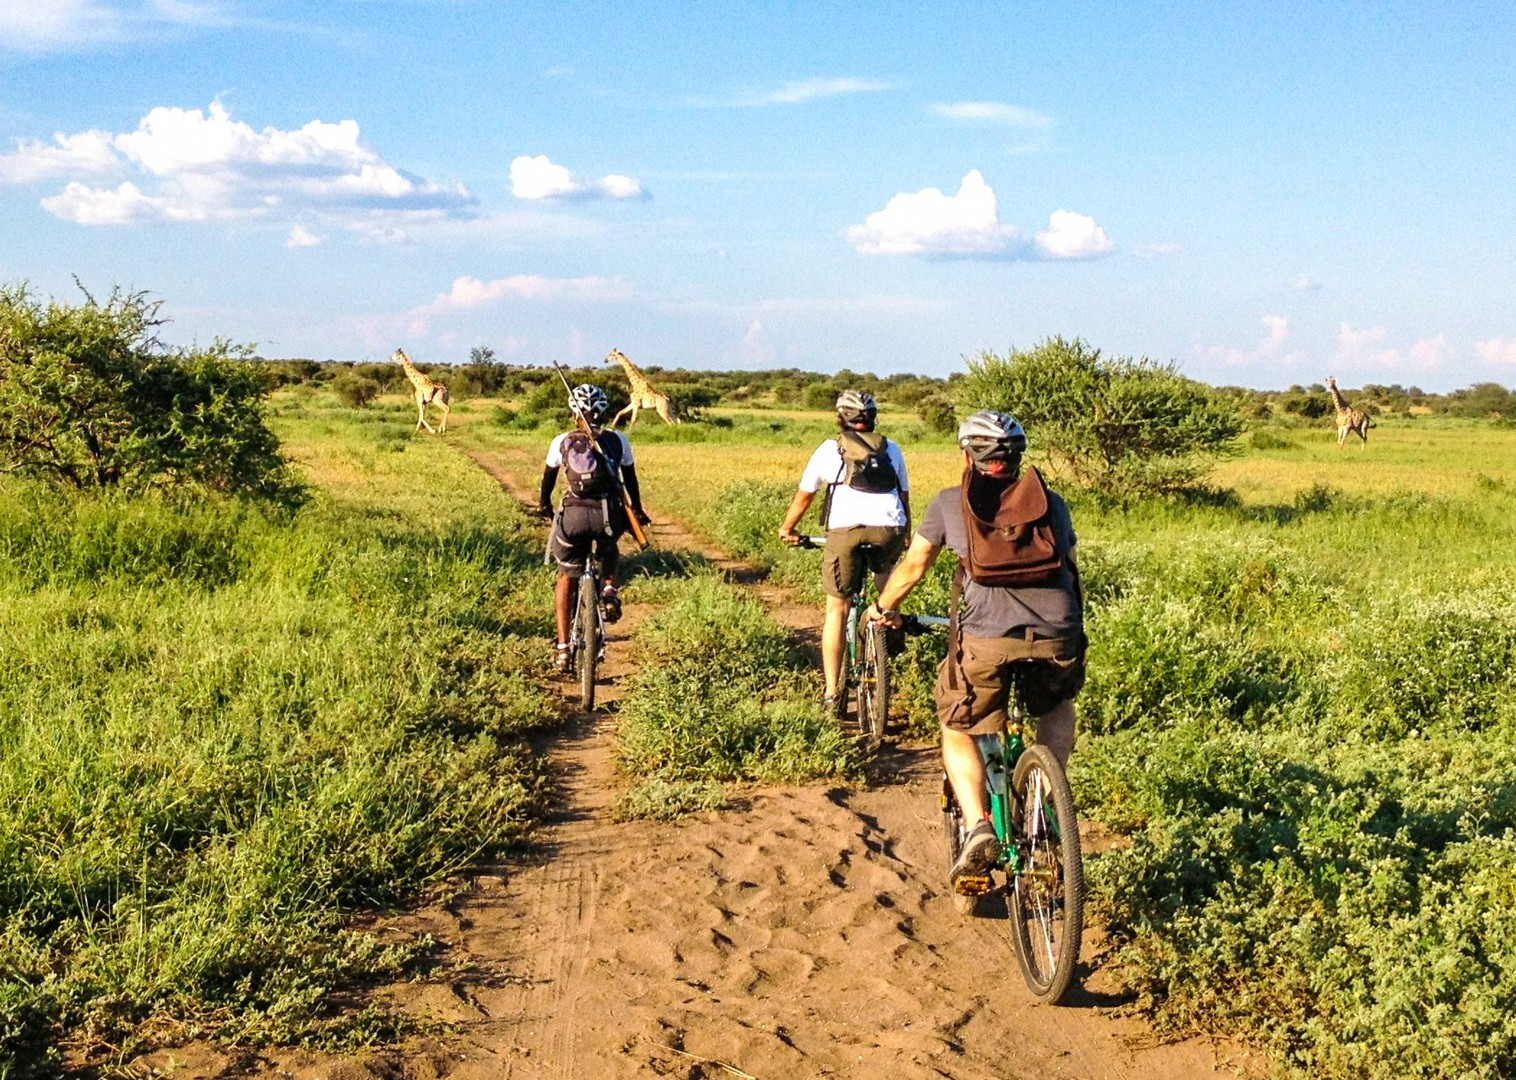 guided-mountain-bike-land-of-the-giants-trip-skedaddle-holiday.jpg - NEW! South Africa and Botswana - Mountain Biking